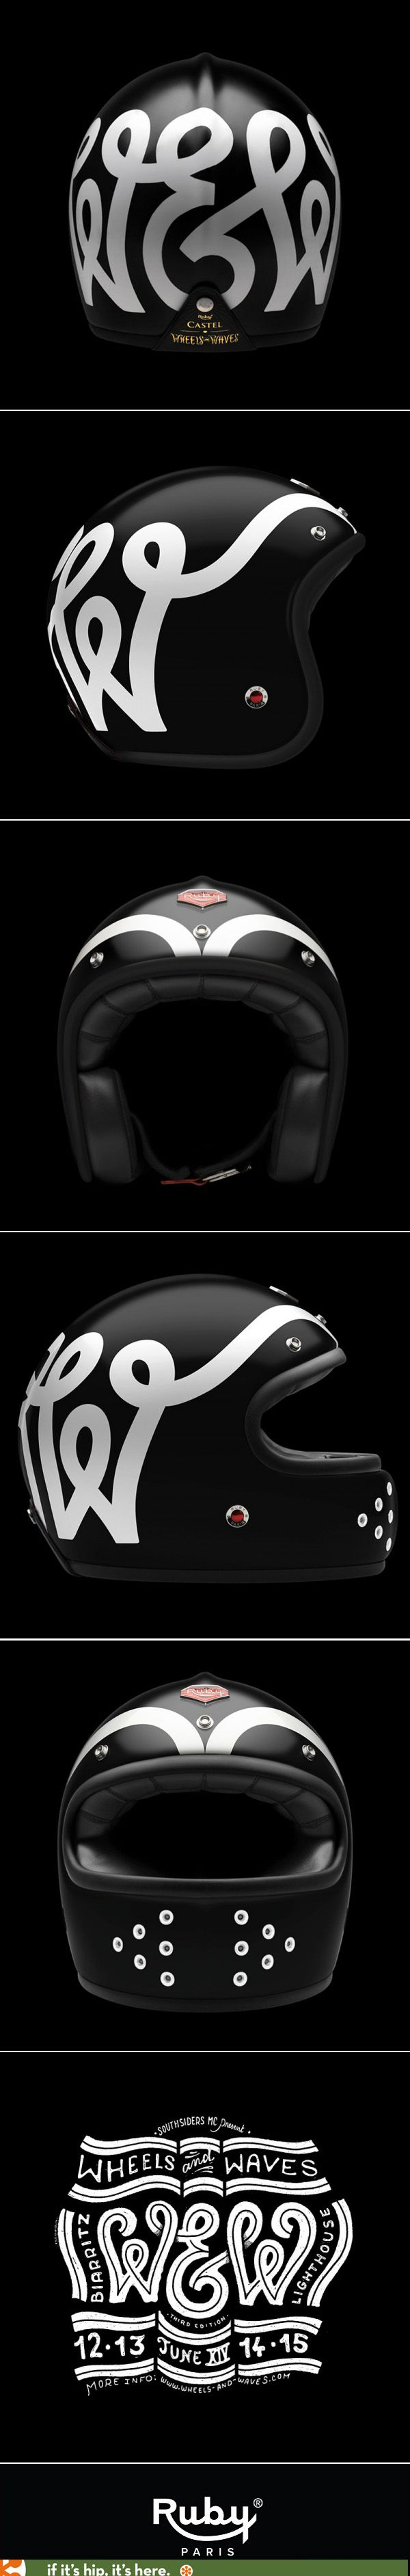 Limited edition Ruby Atelier X Wheels and Waves Motorcycle Helmet with typographic design by Steven Burke